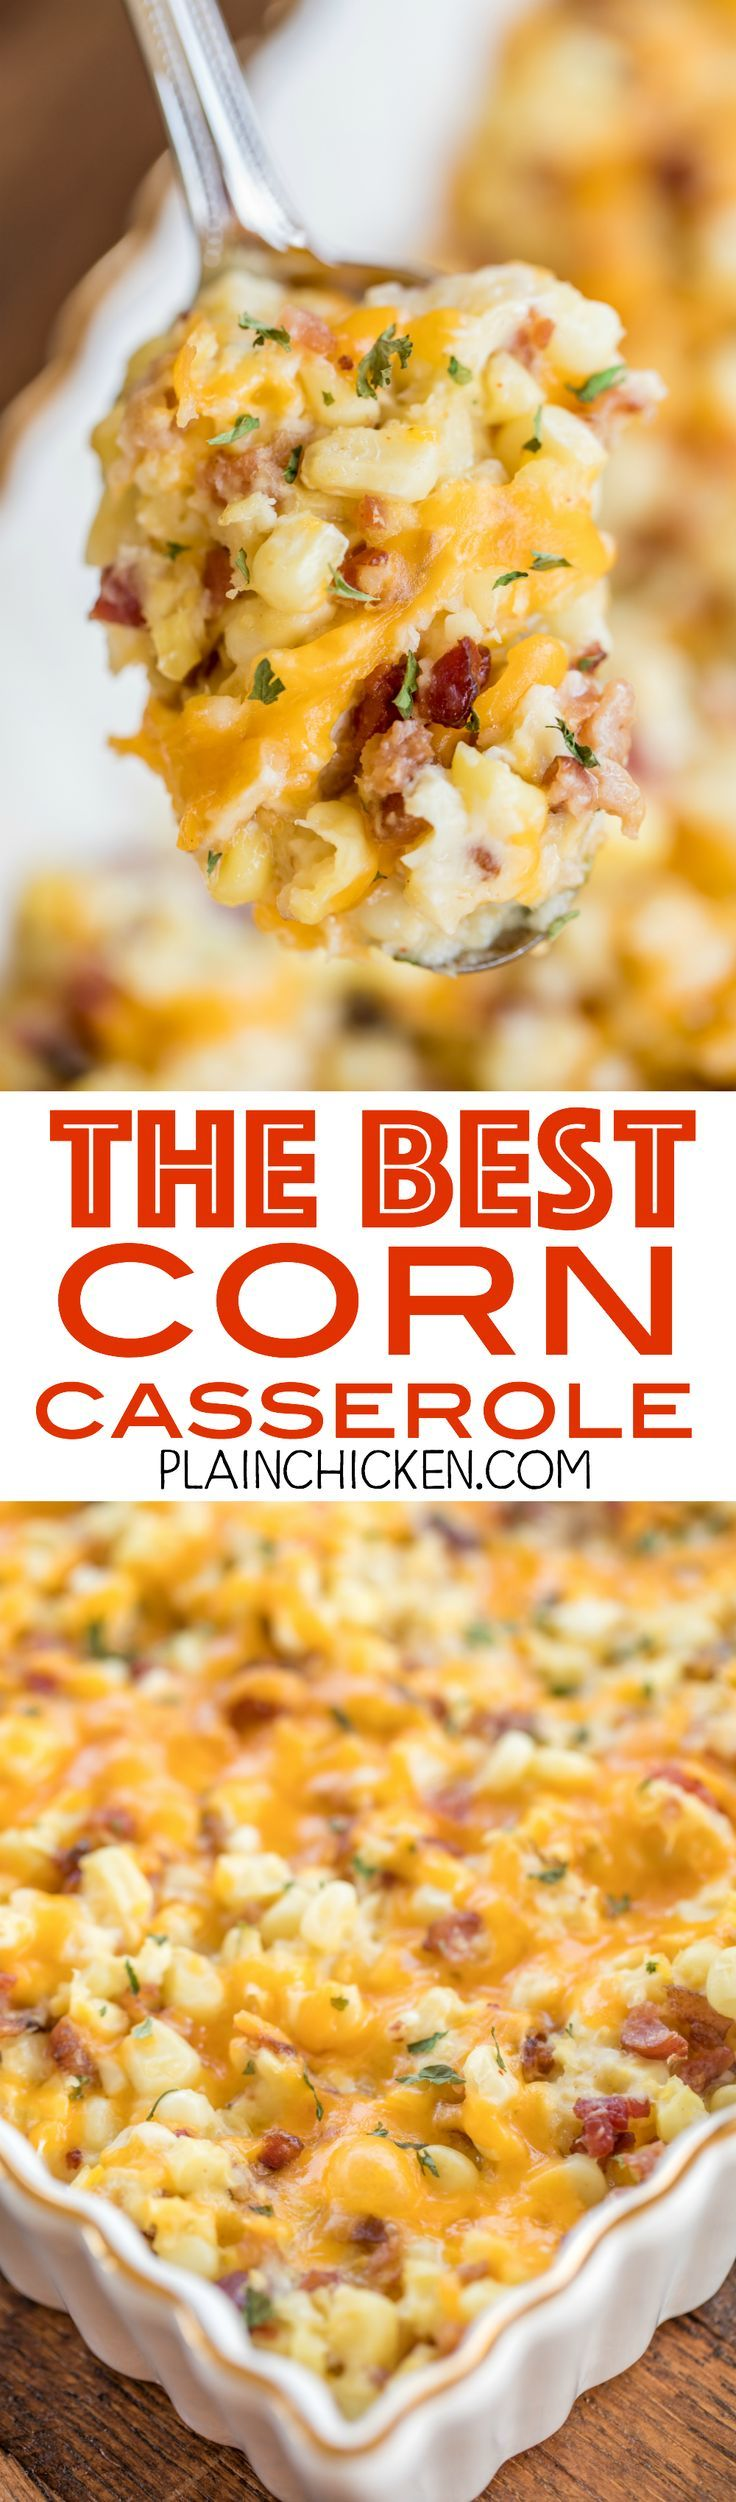 The BEST Corn Casserole - seriously delicious! Creamed corn loaded with cheddar and bacon! SO good!! Can make ahead of time and refrigerate or freezer for later. Corn, eggs, flour, sugar, butter, cayenne pepper, cheddar cheese, bacon and Ritz crackers. Everyone RAVES about this easy casserole recipe. There are never any leftovers when I take this side dish to a party!